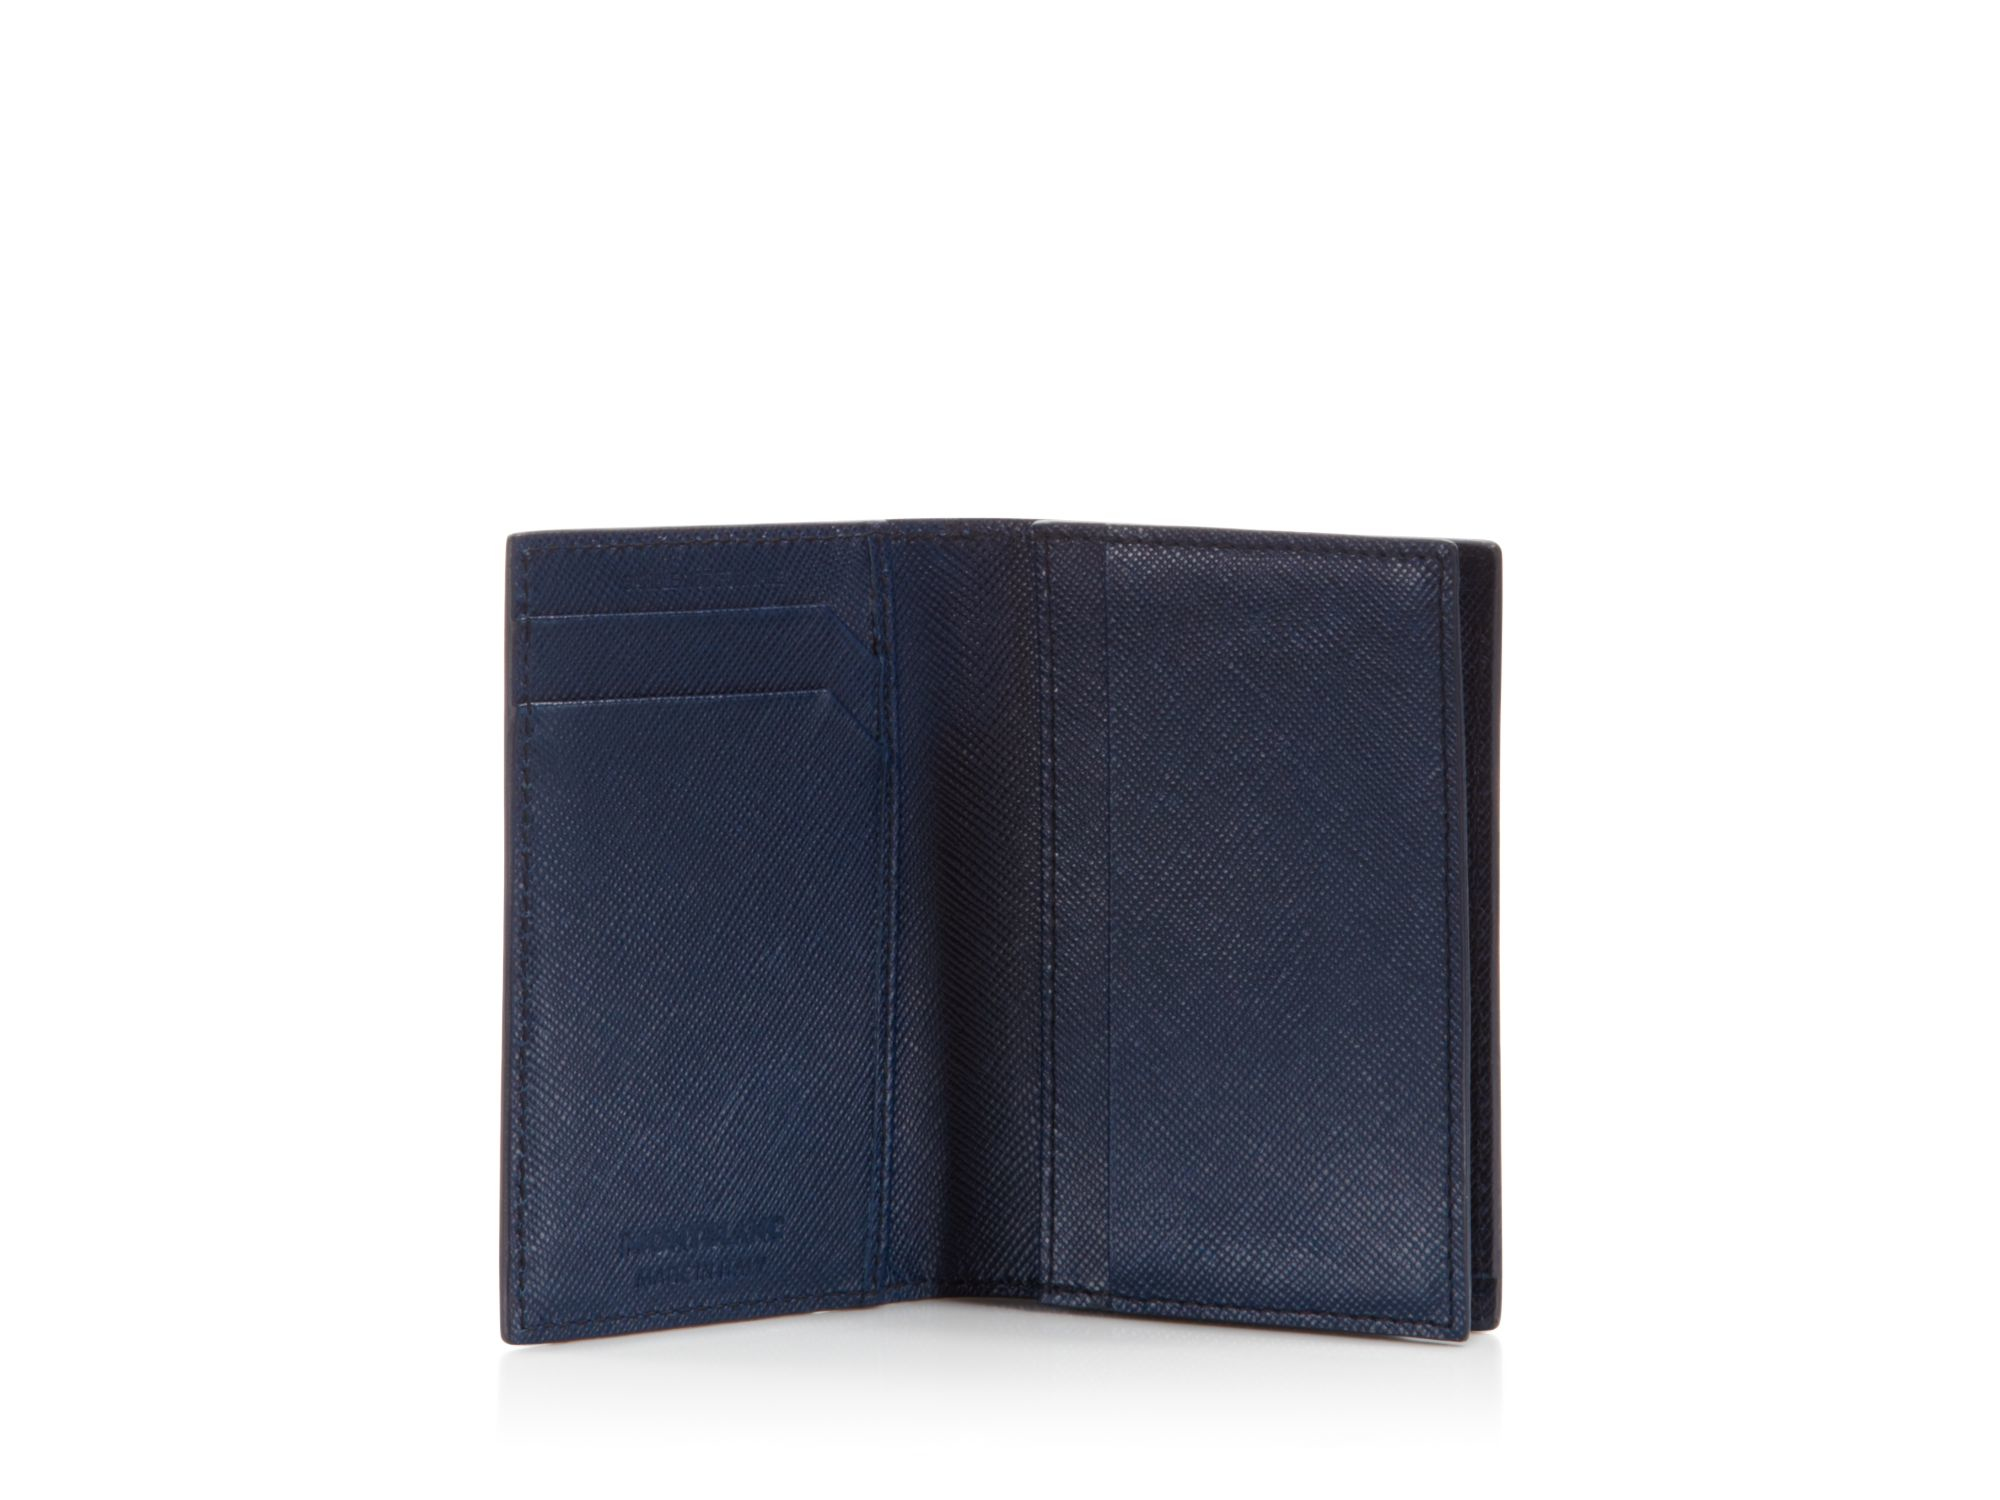 Mont blanc business card holder unlimitedgamers montblanc indigo business card holder bloomingdales exclusive colourmoves